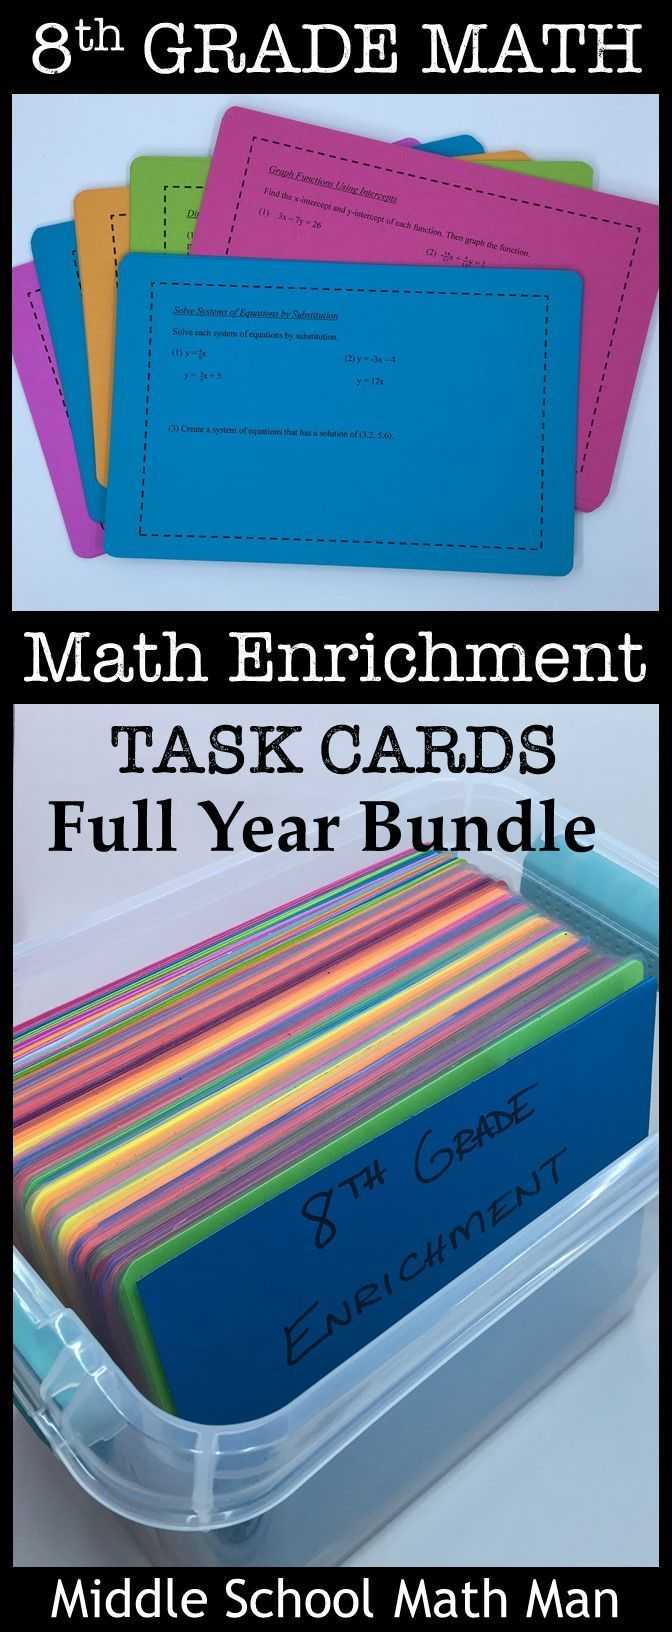 This full year bundle of 8th grade math enrichment task cards includes 89 different challenging task cards and 215 total problems for 8th grade math. Includes a wide range of geometry, number system, algebra, probability, and statistics concepts. These are great to use in math workshop, as exit slips, or for students who finish work early!